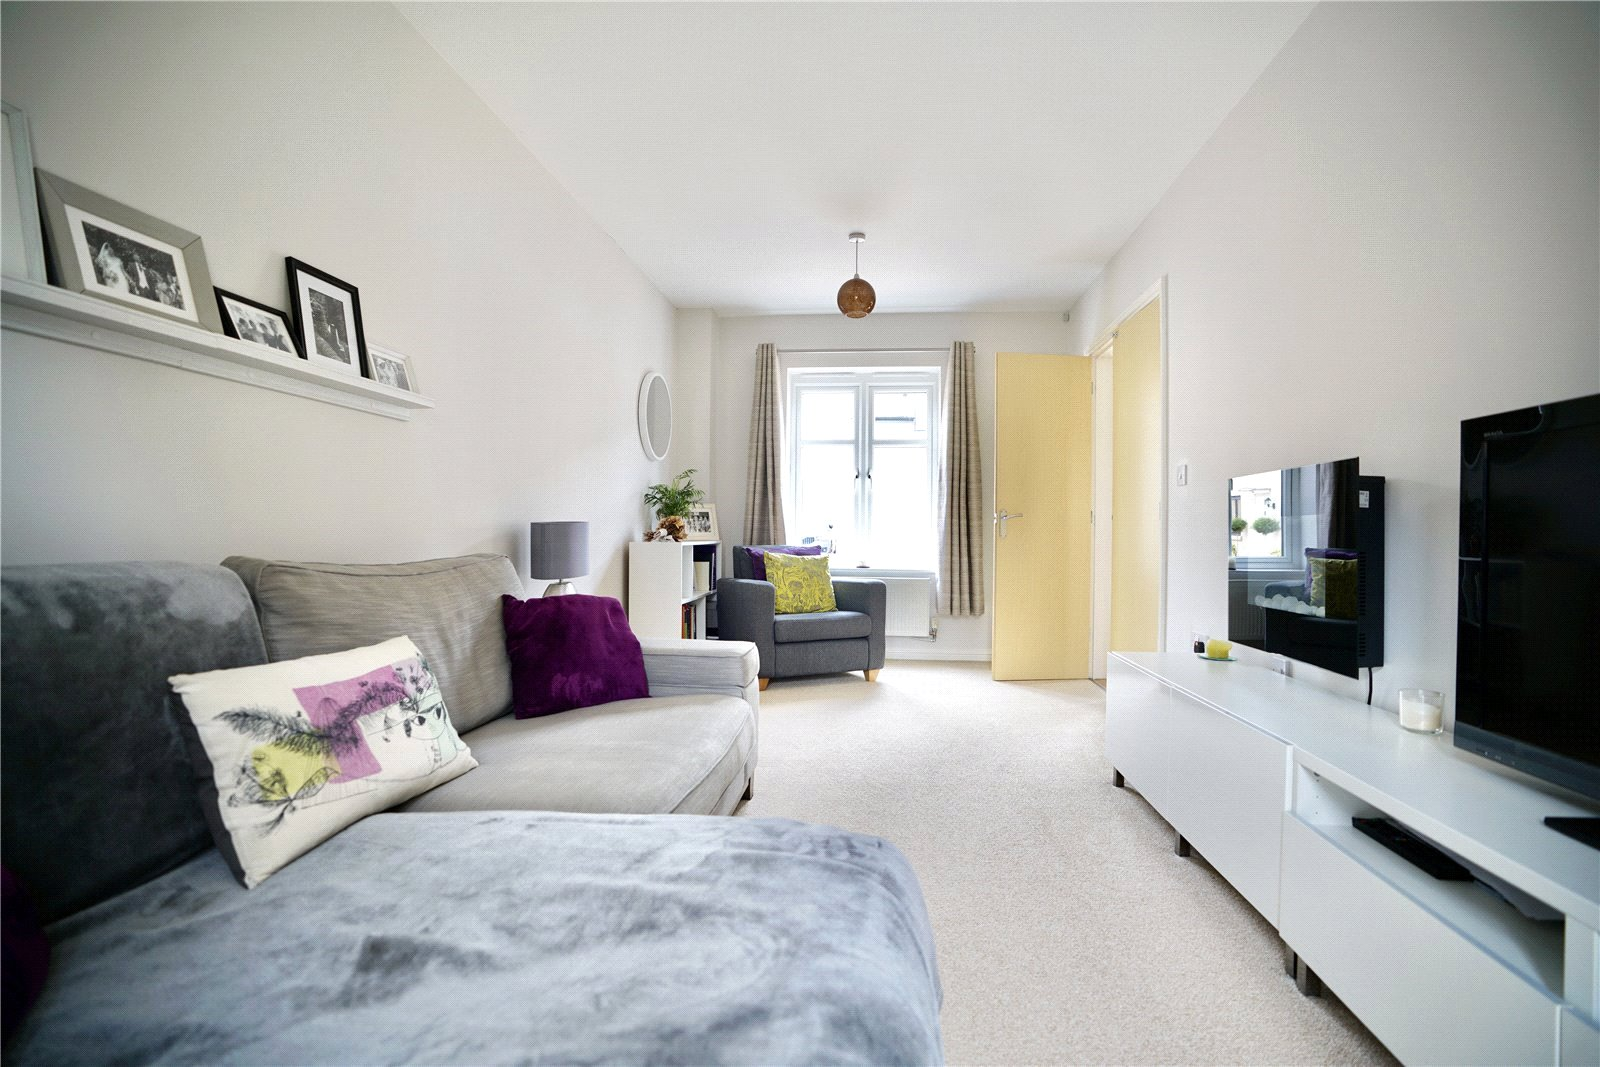 3 bed house for sale in St. Ives, PE27 5DL 4